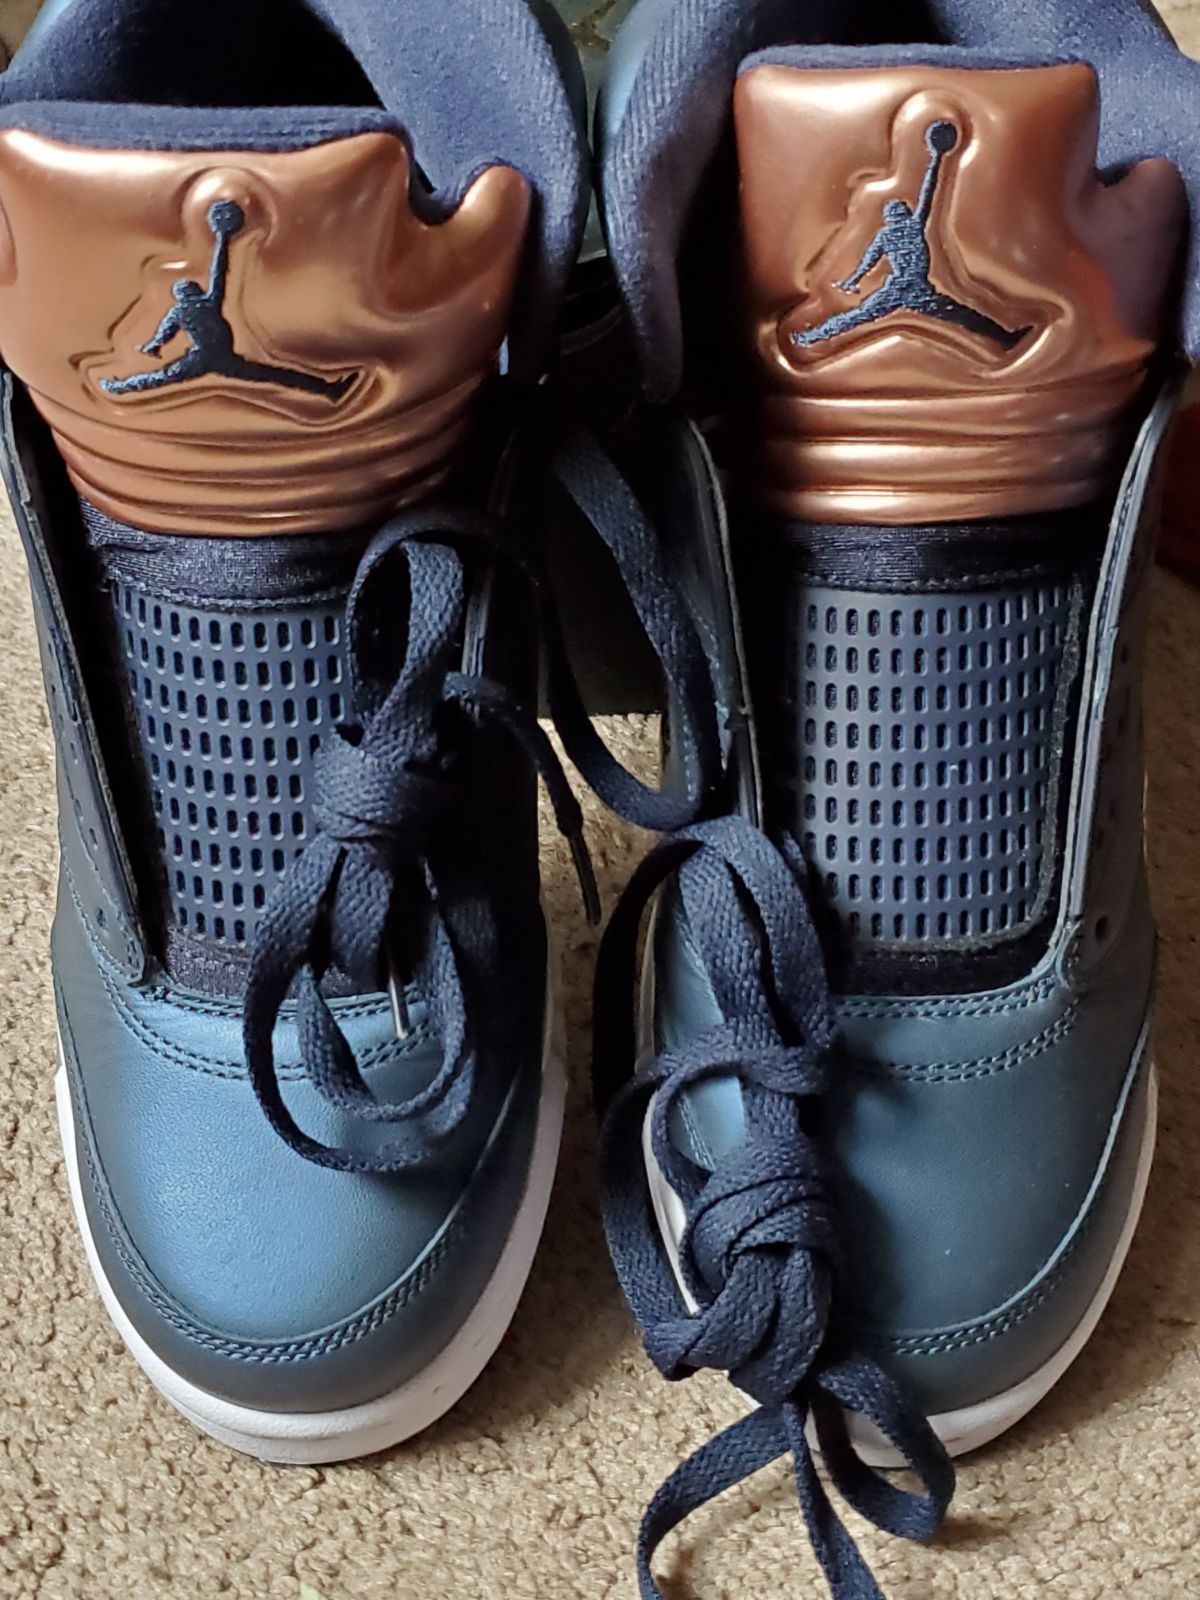 A pair of bronze blue and whiteair Jordan 5 retros brother wore one time not even a whole day his feet was hurting they're like new right shoe up top half a little scratch on them other than that they're nice. Jordans come with the original box come from a pet free clean home